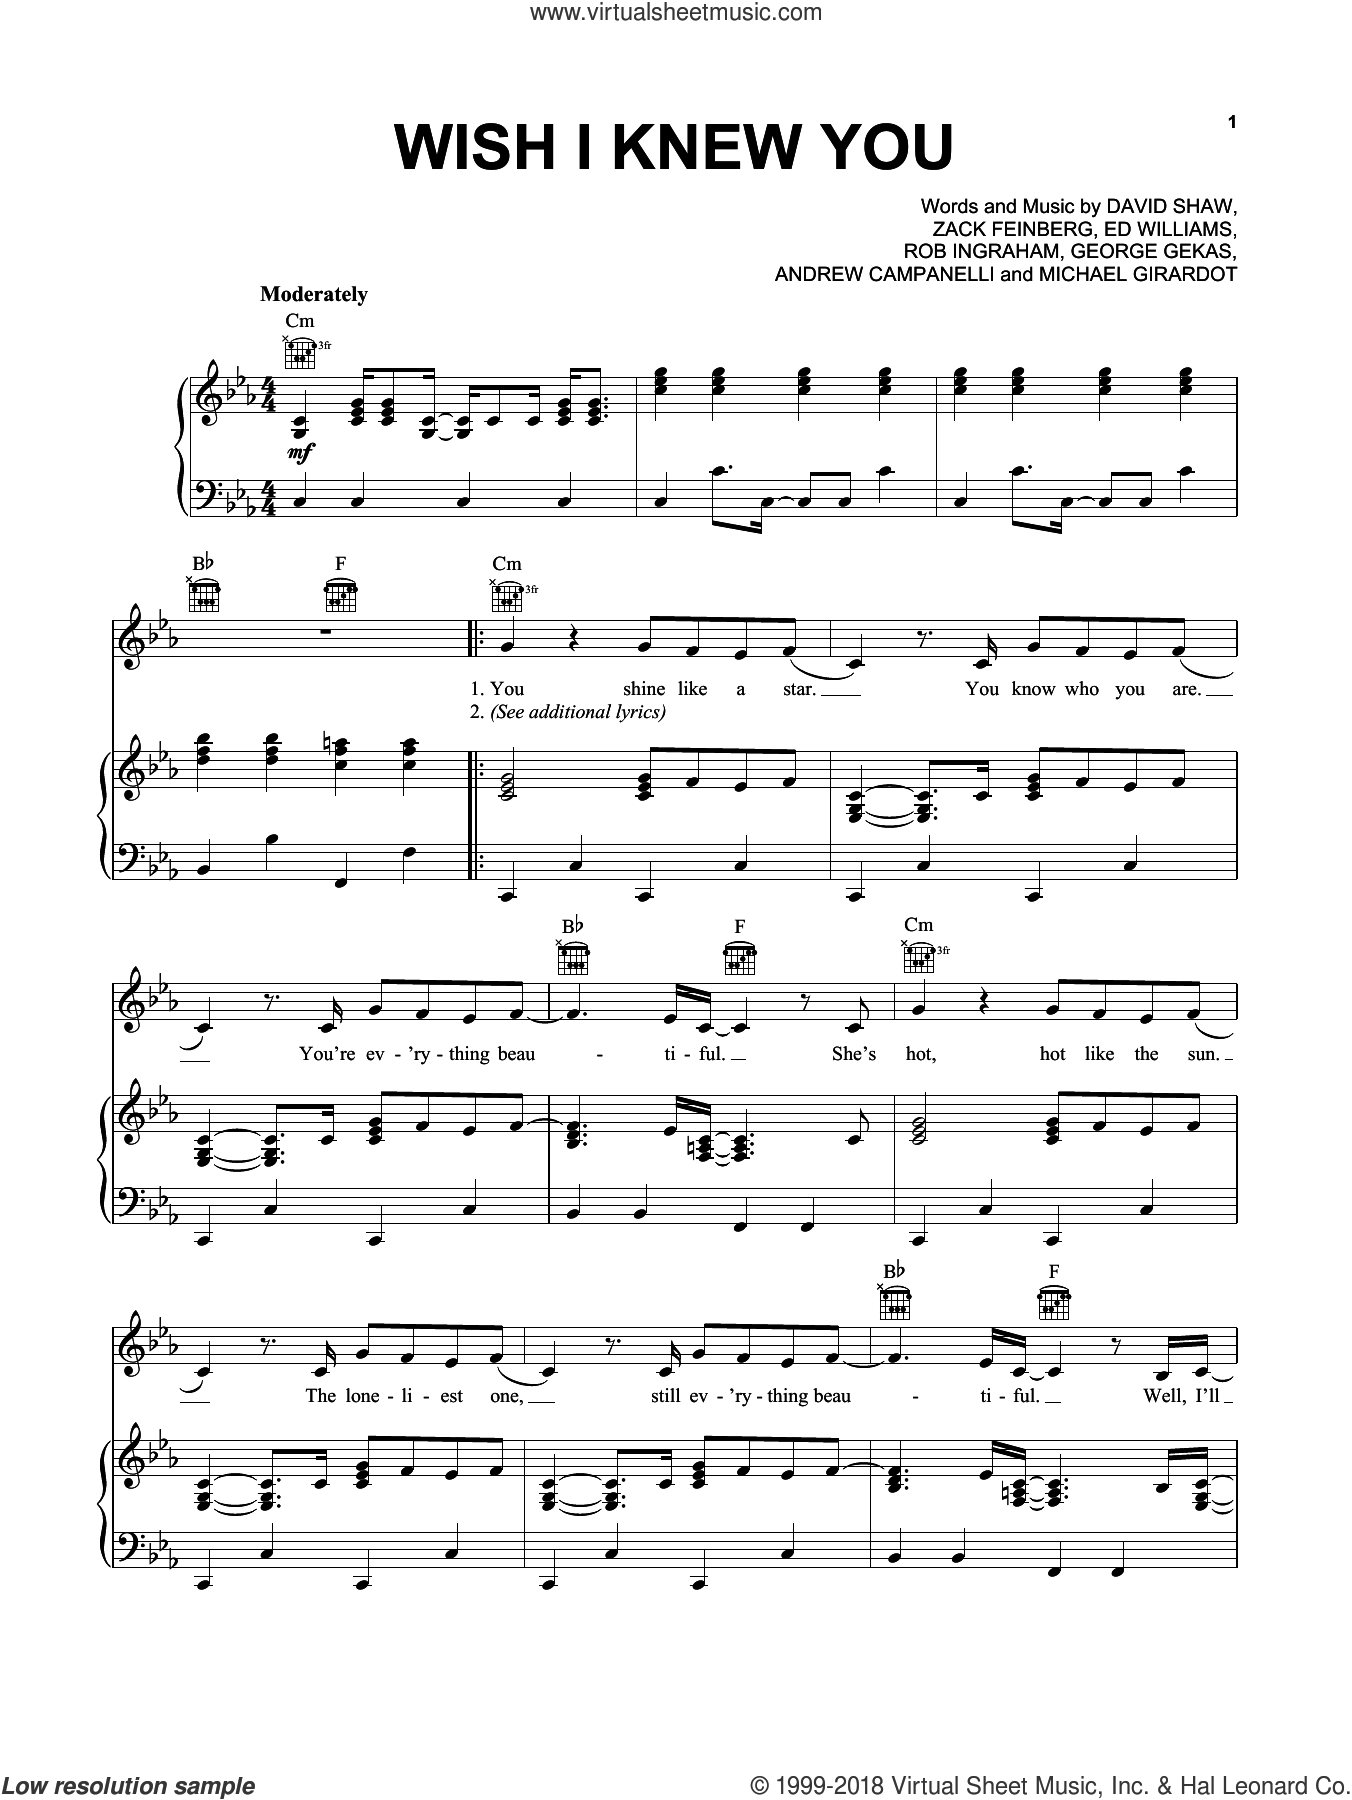 Wish I Knew You sheet music for voice, piano or guitar by The Revivalists, Andrew Campanelli, David Shaw, Ed Williams, George Gekas, Michael Girardot, Rob Ingraham and Zack Feinberg, intermediate skill level